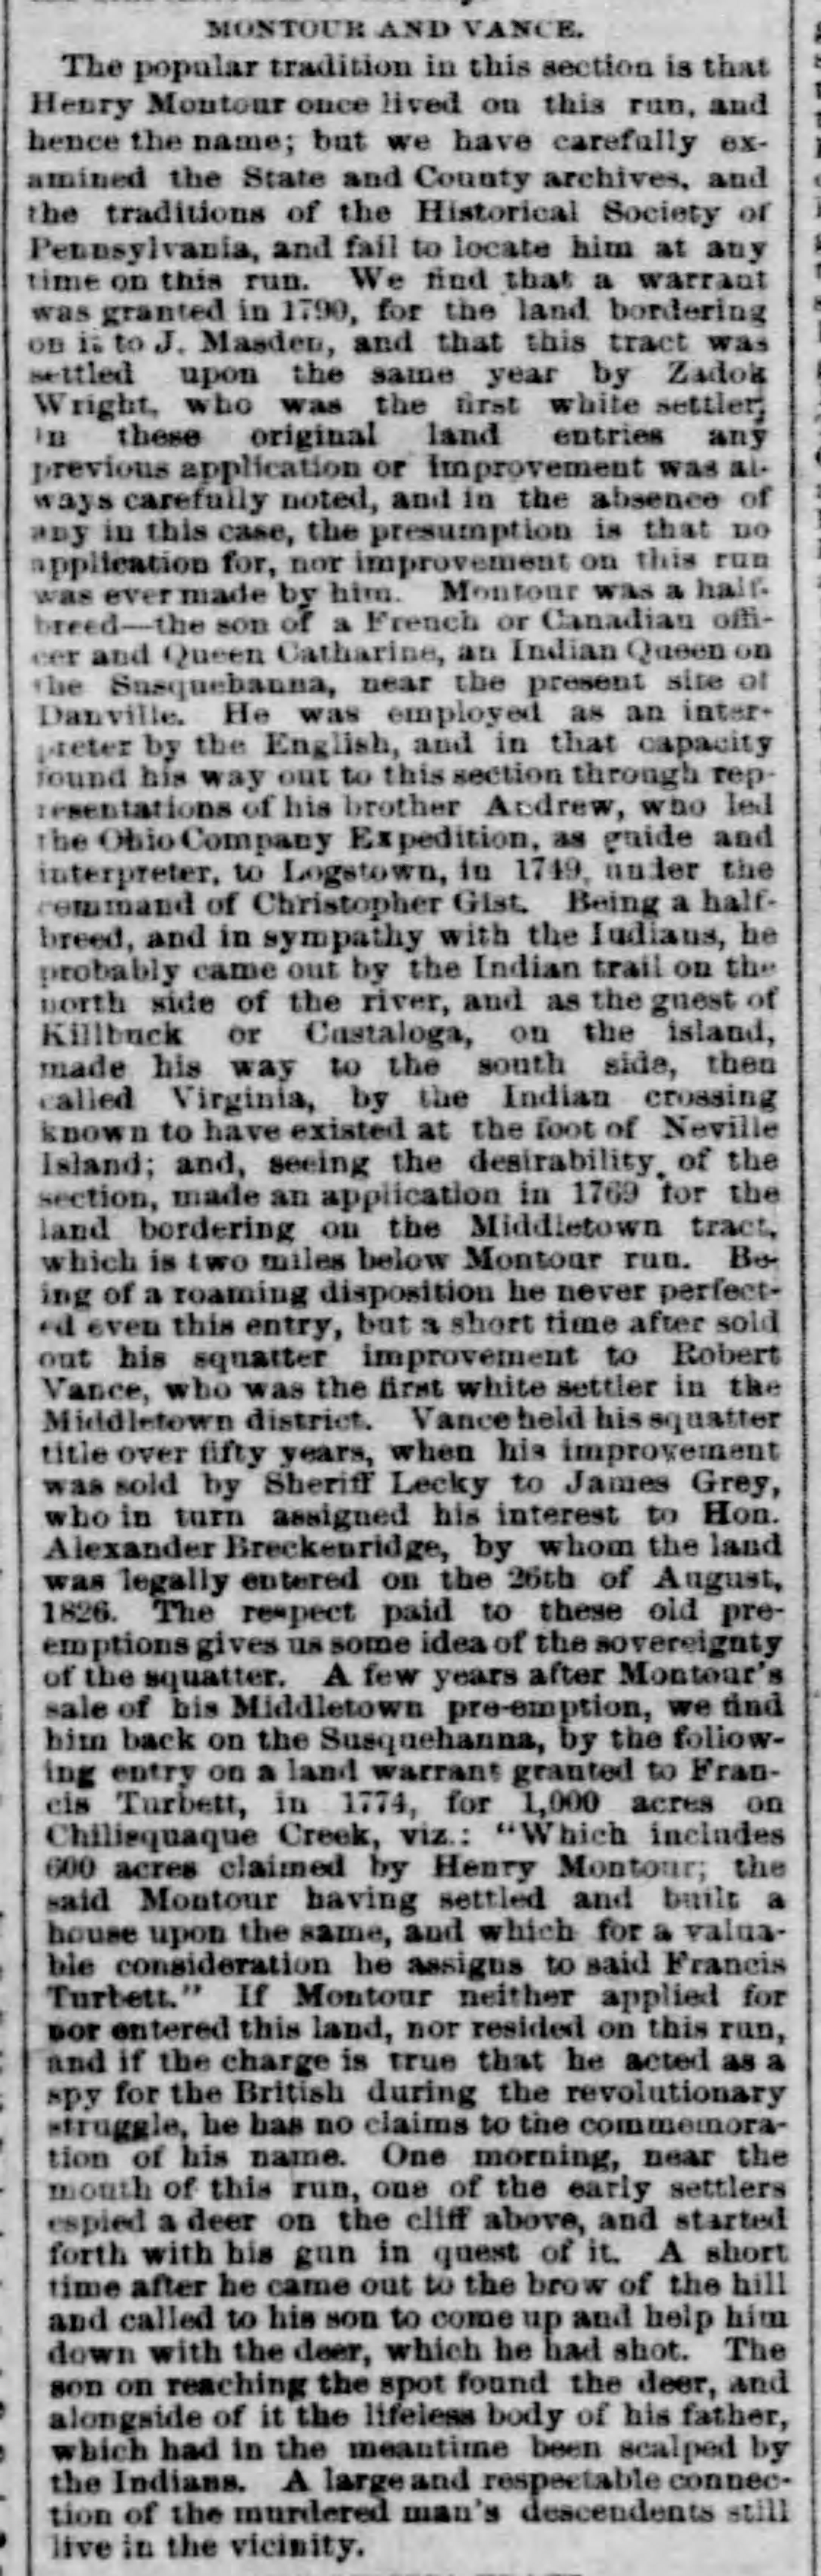 Our New Outlet - Pittsburgh_Post_Gazette_Wed__Feb_26__1879(e).jpg